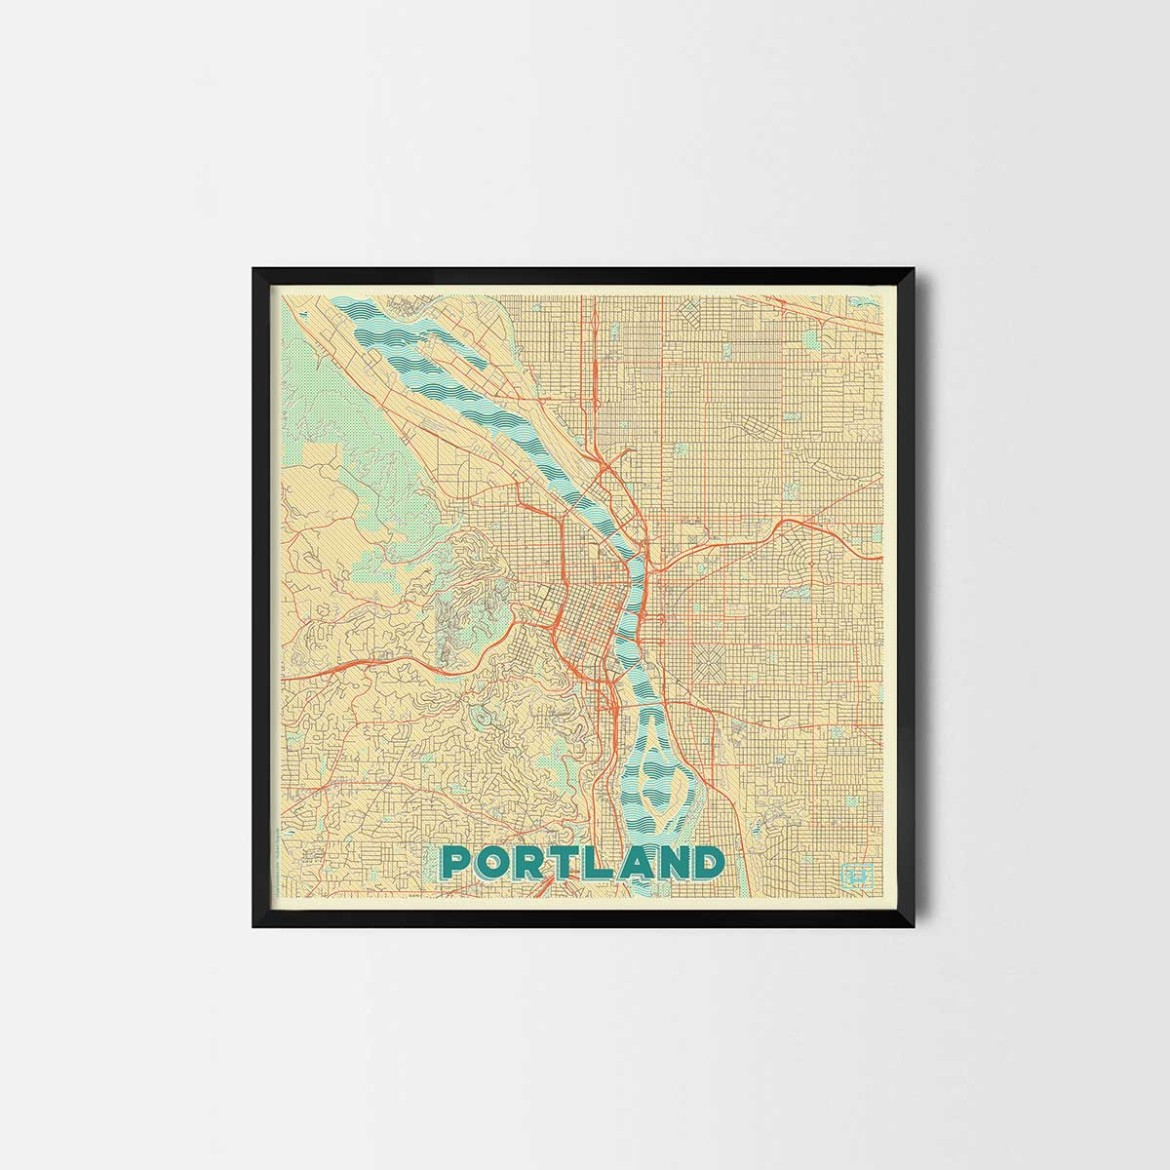 Portland gift - Map Art Prints and Posters, Home Decor Gifts